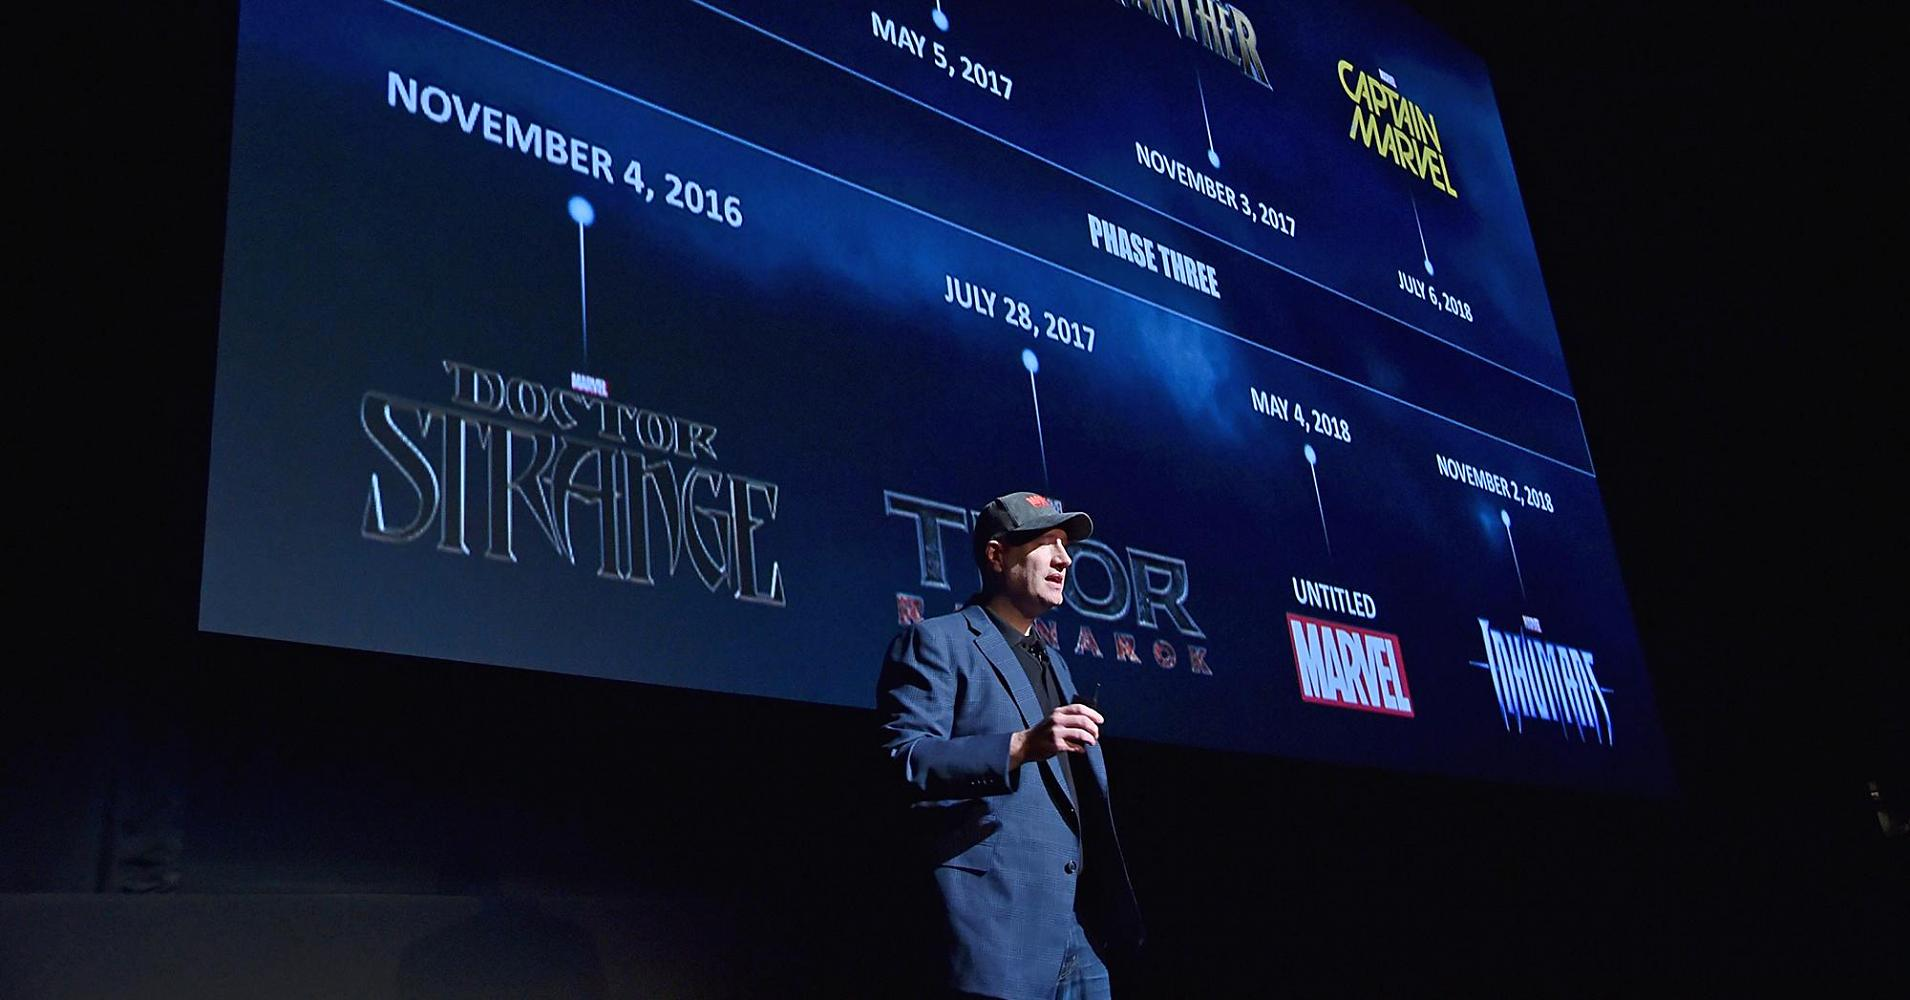 tu tho rua xe den ong trum so huu de che ty do marvel 'avengers' hinh anh 2